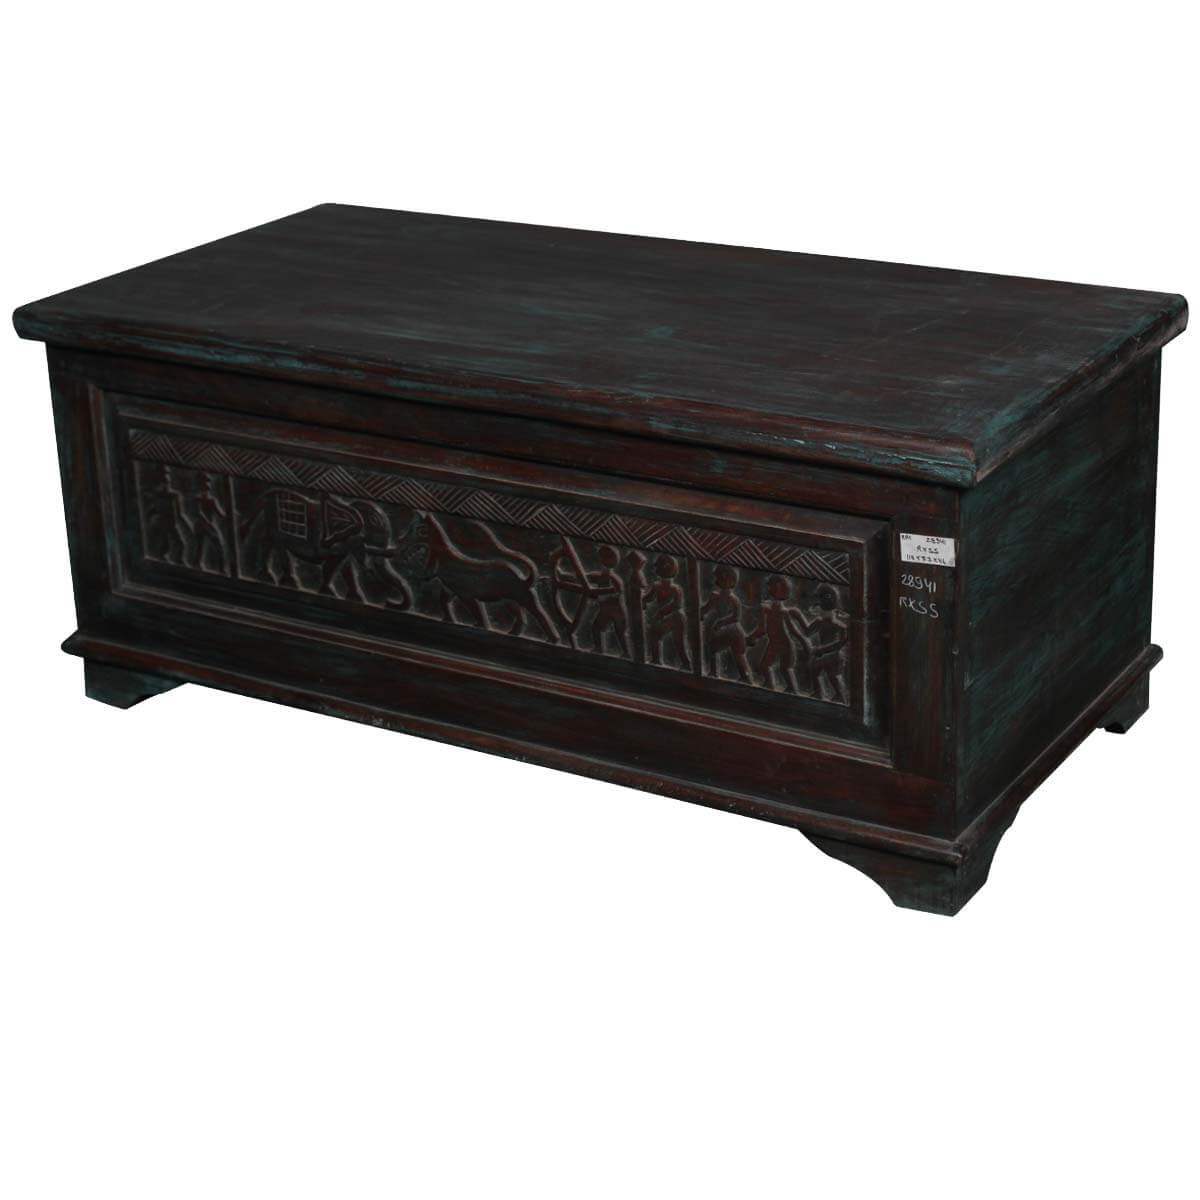 Rustic Mango Wood African Themed Exotic Coffee Table Storage Trunk